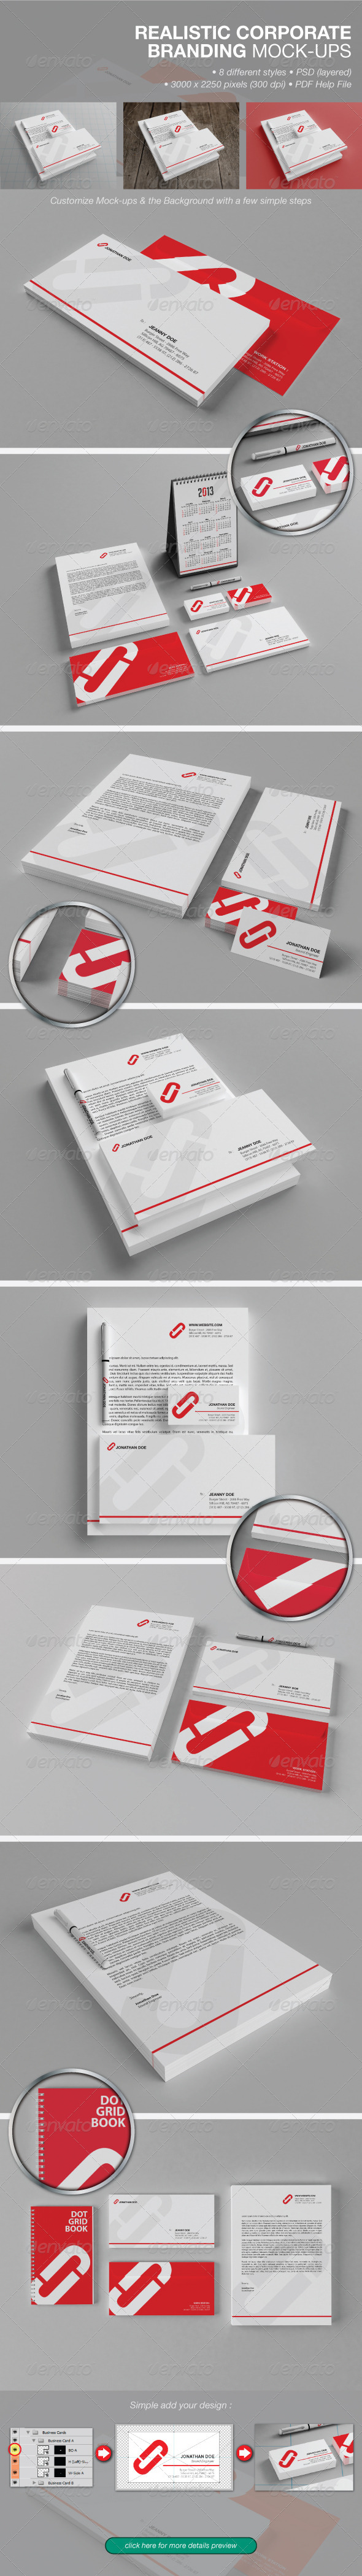 GraphicRiver Realistic Corporate Branding Mock-ups 5109303